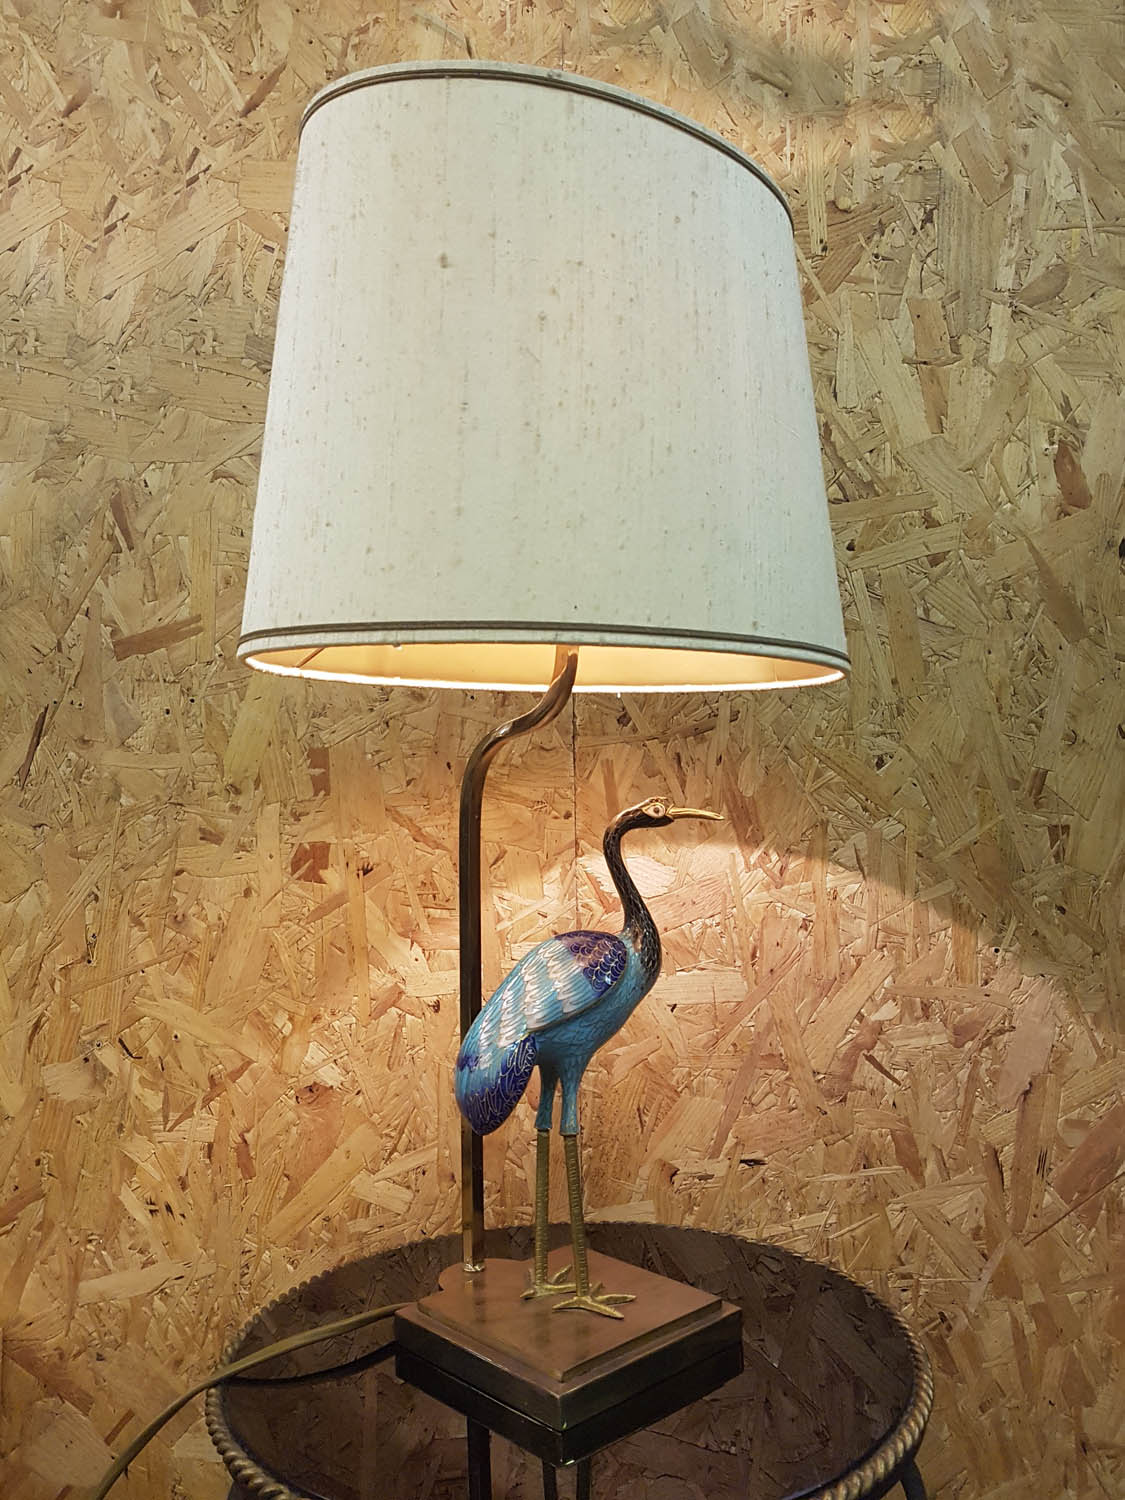 Junk Deluxe Cloisonn Peacock Table Lamp Wiring Uk Quality Brass With Enamelled And Original Shade In Very Good Condition Has Been Checked New Plug Installed Pat